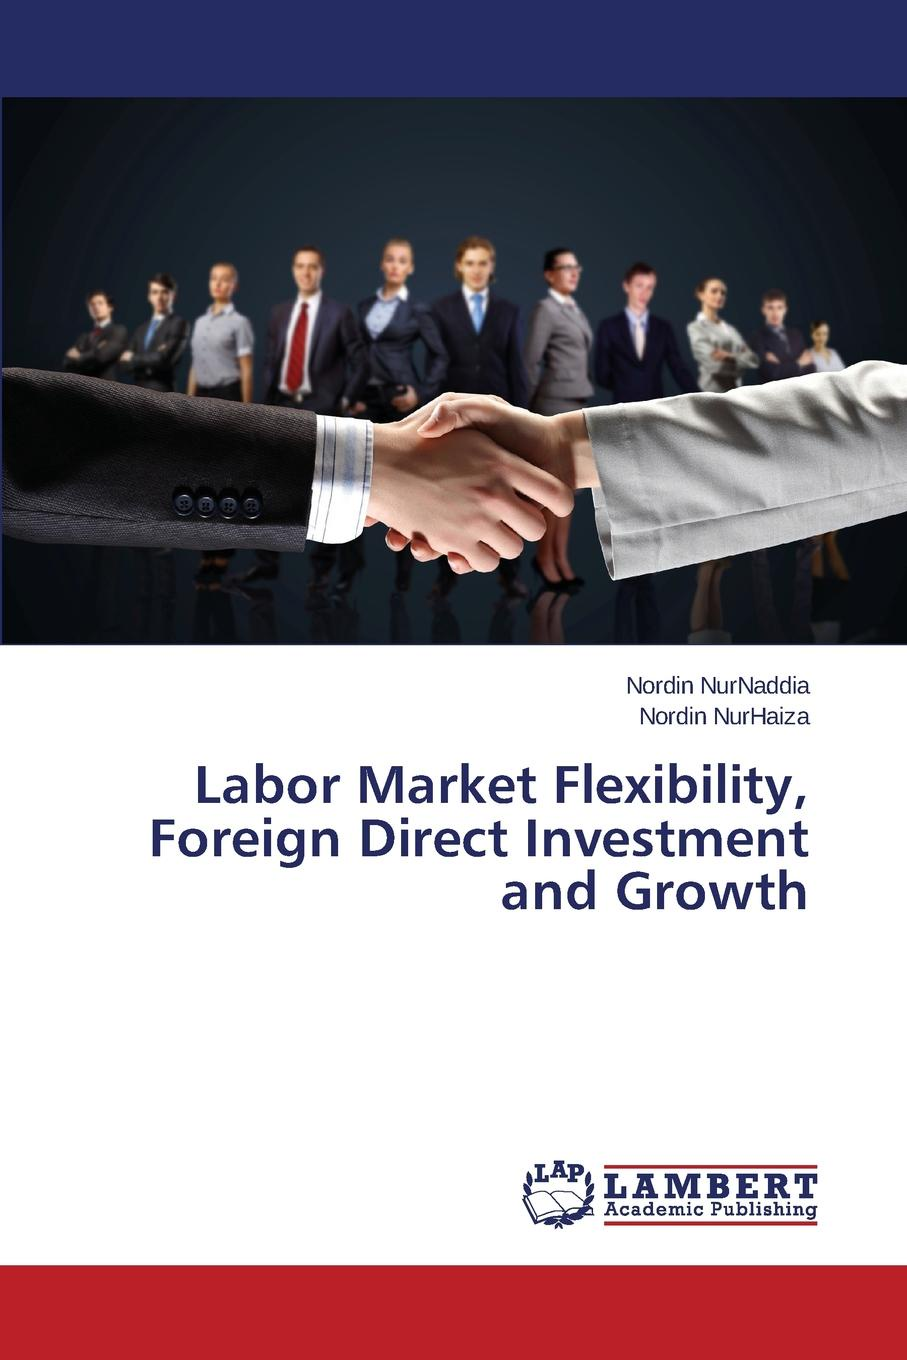 NurNaddia Nordin, NurHaiza Nordin Labor Market Flexibility, Foreign Direct Investment and Growth tibebu aragie impact foreign direct investment on domestic private investment in ethiopia